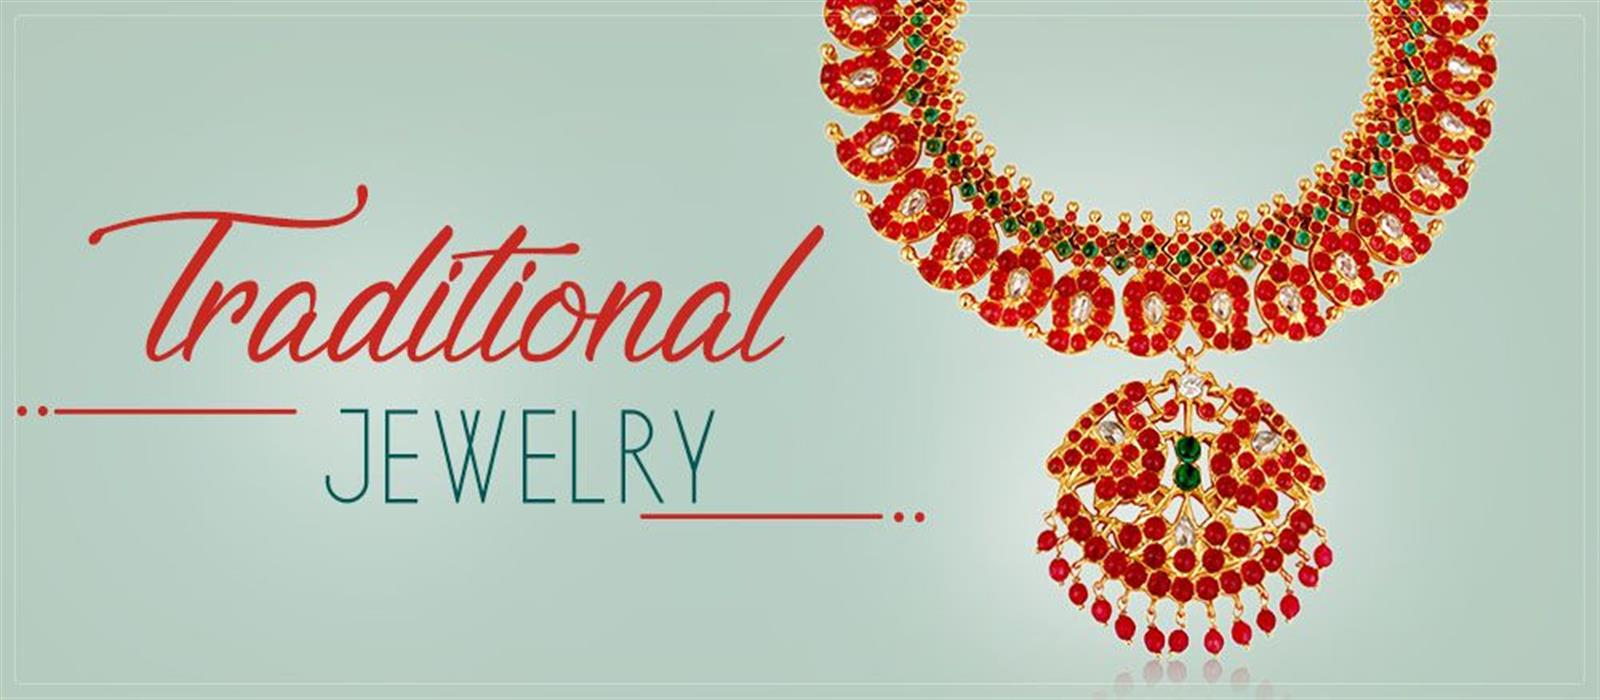 Designers of Traditional Jewelry in Jaipur